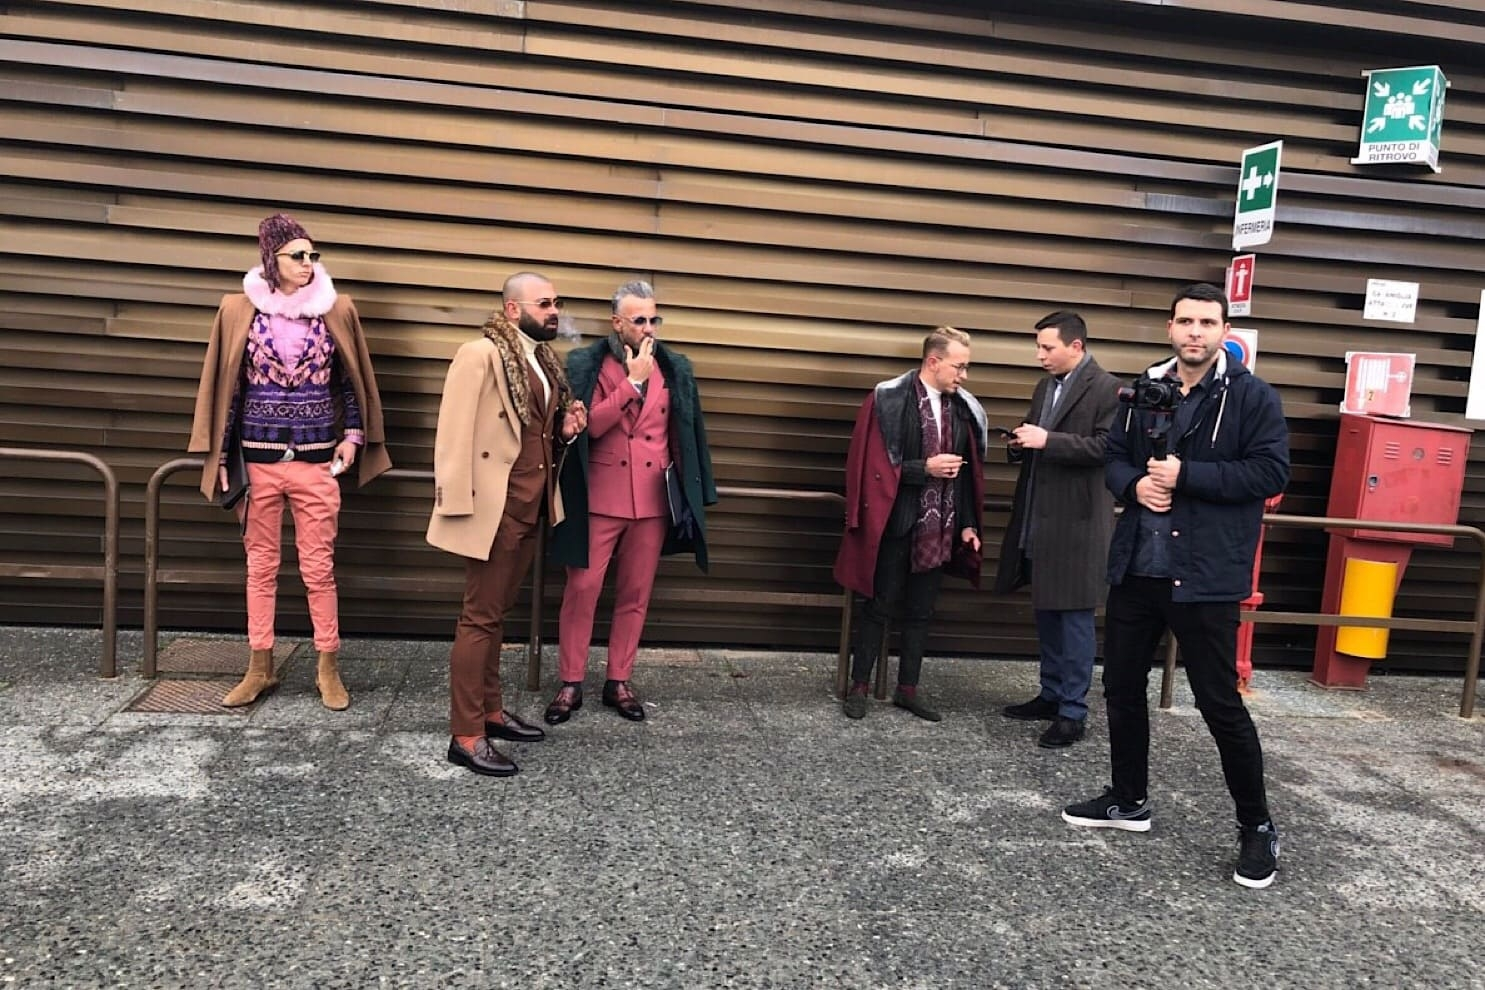 19ss_journal_pitti1_9.jpg